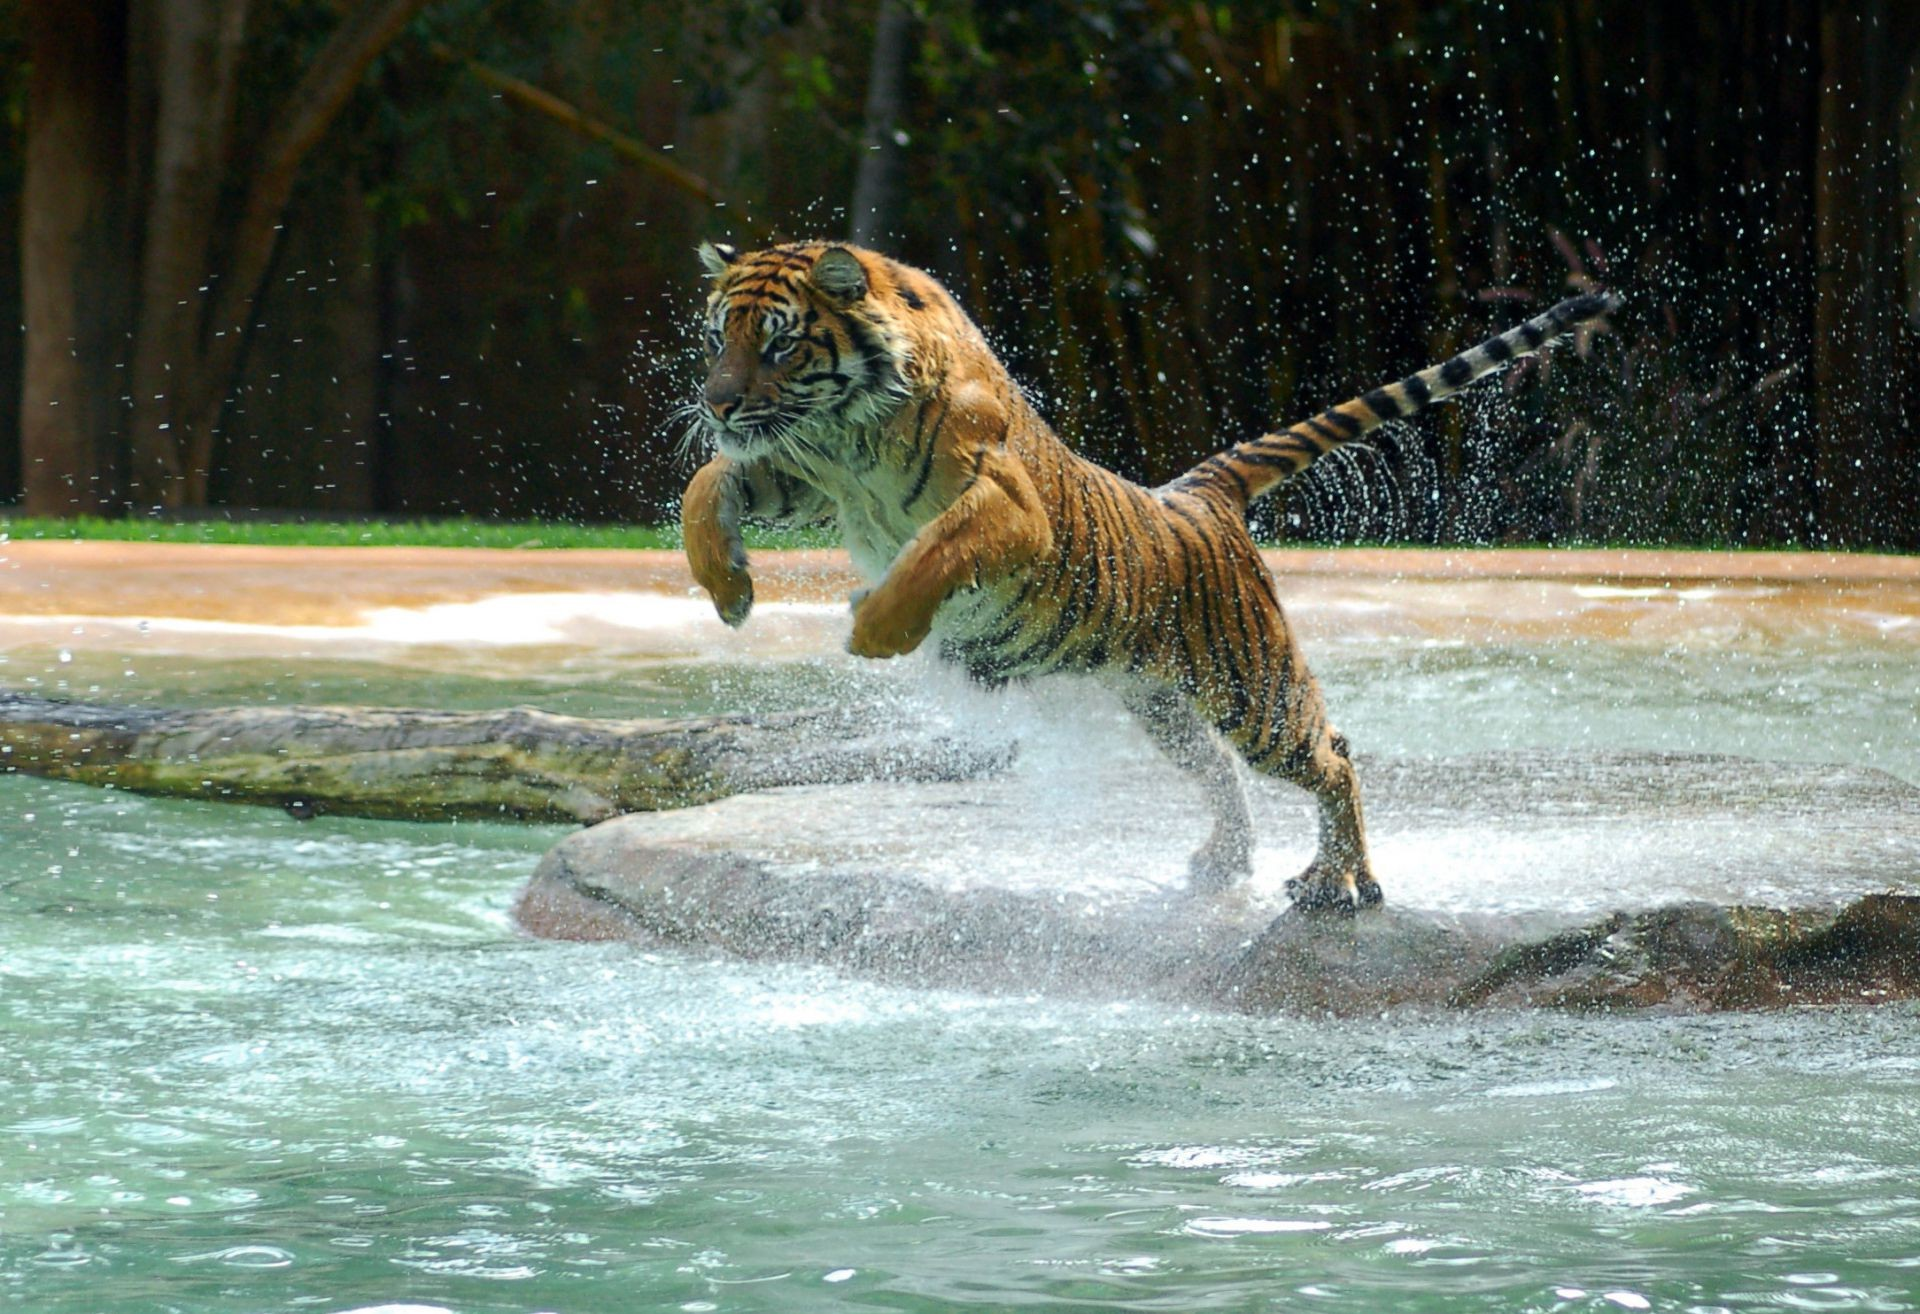 water water powerful animal jump tiger jump Tiger paws